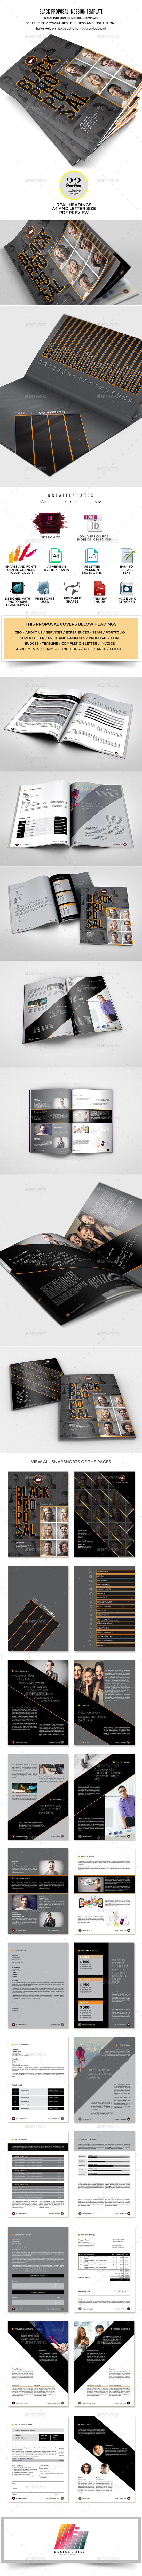 GraphicRiver Black Multipurpose InDesign Proposal Templates 10111837